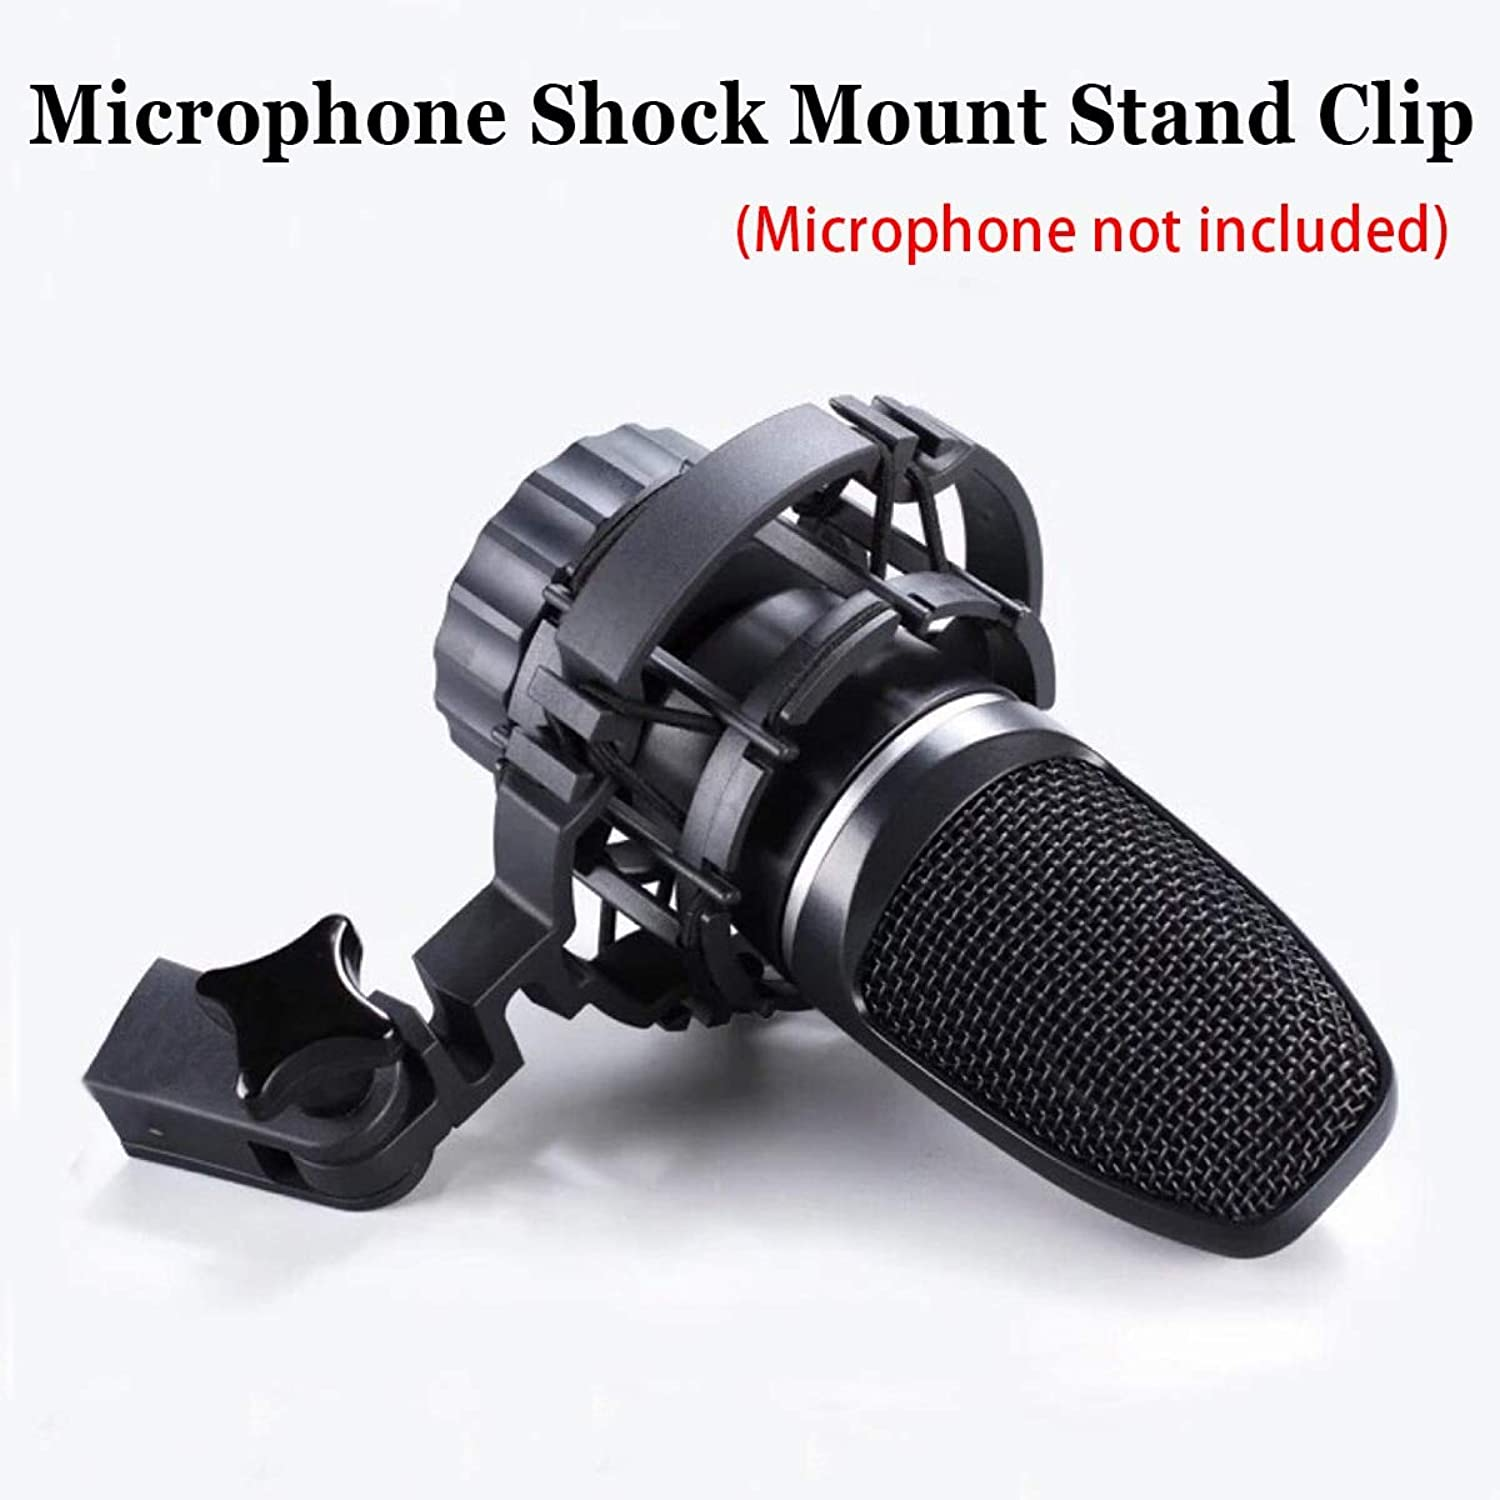 Sala-Deco - Microphone Shock Mount Stand Clip for AKG H-85 C3000 C2000 C4000 C414 Anti-Vibration Professional Mic Stand for Recording Studio